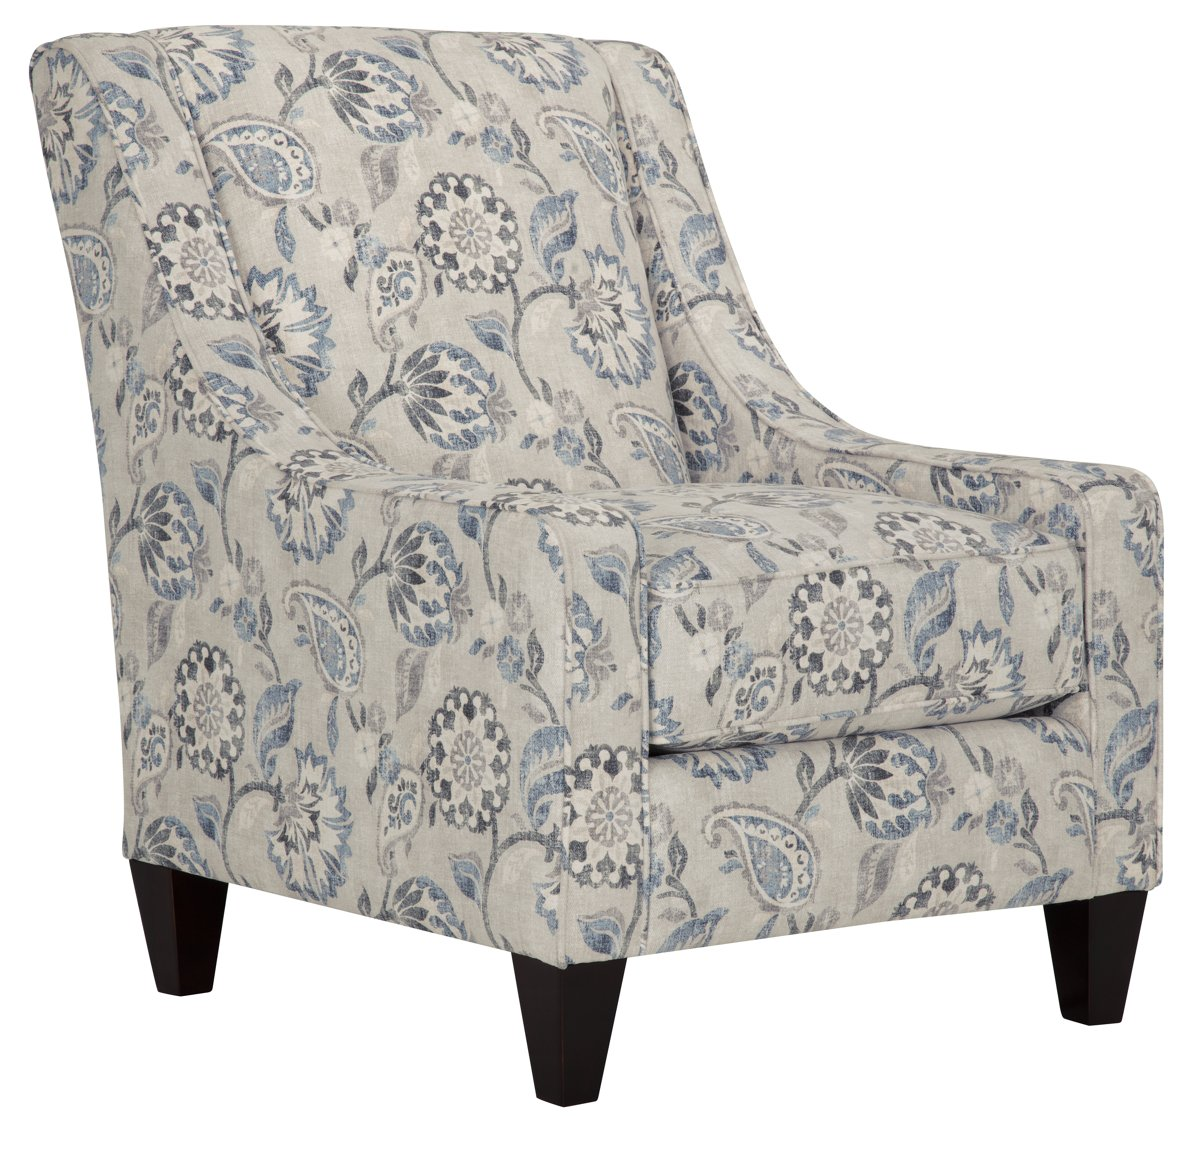 City Furniture Sylvie Blue Floral Accent Chair